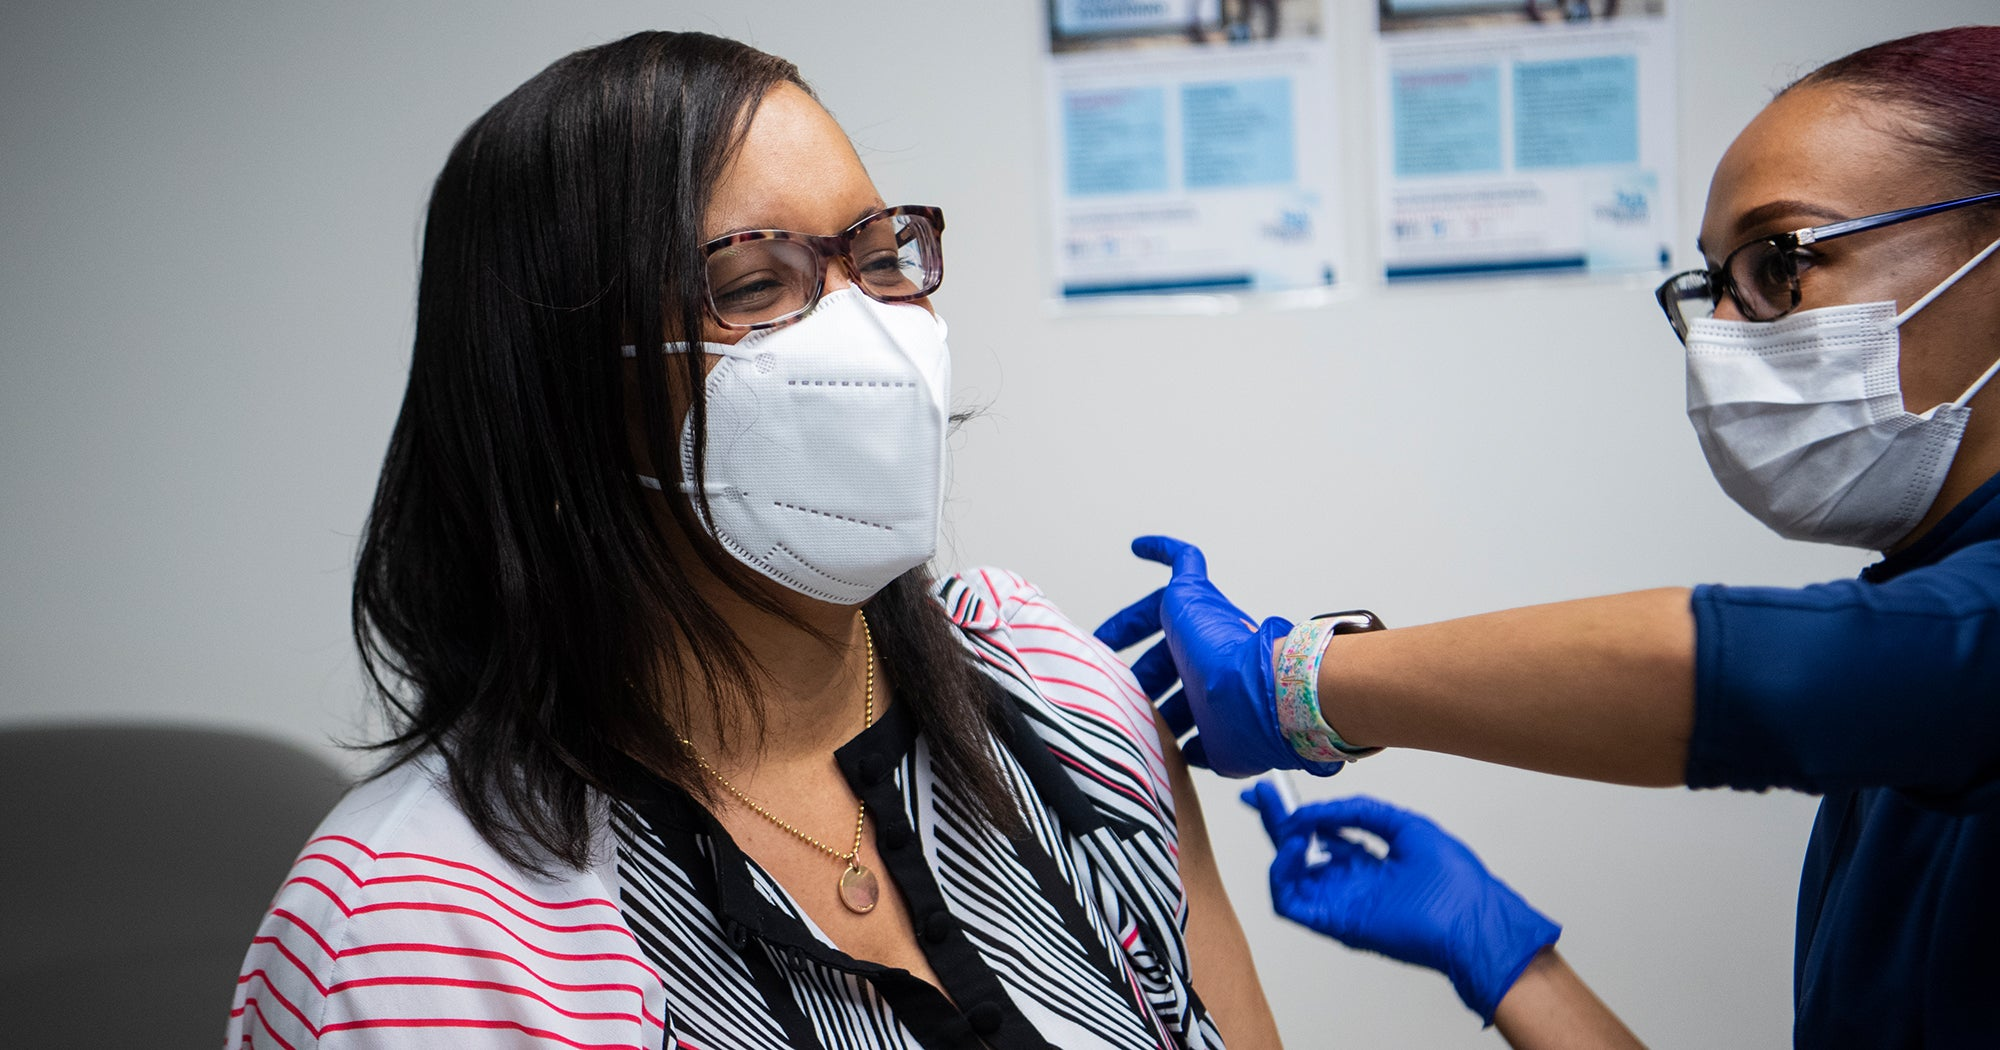 Is It Okay To Delay Your Second Vaccine Jab?